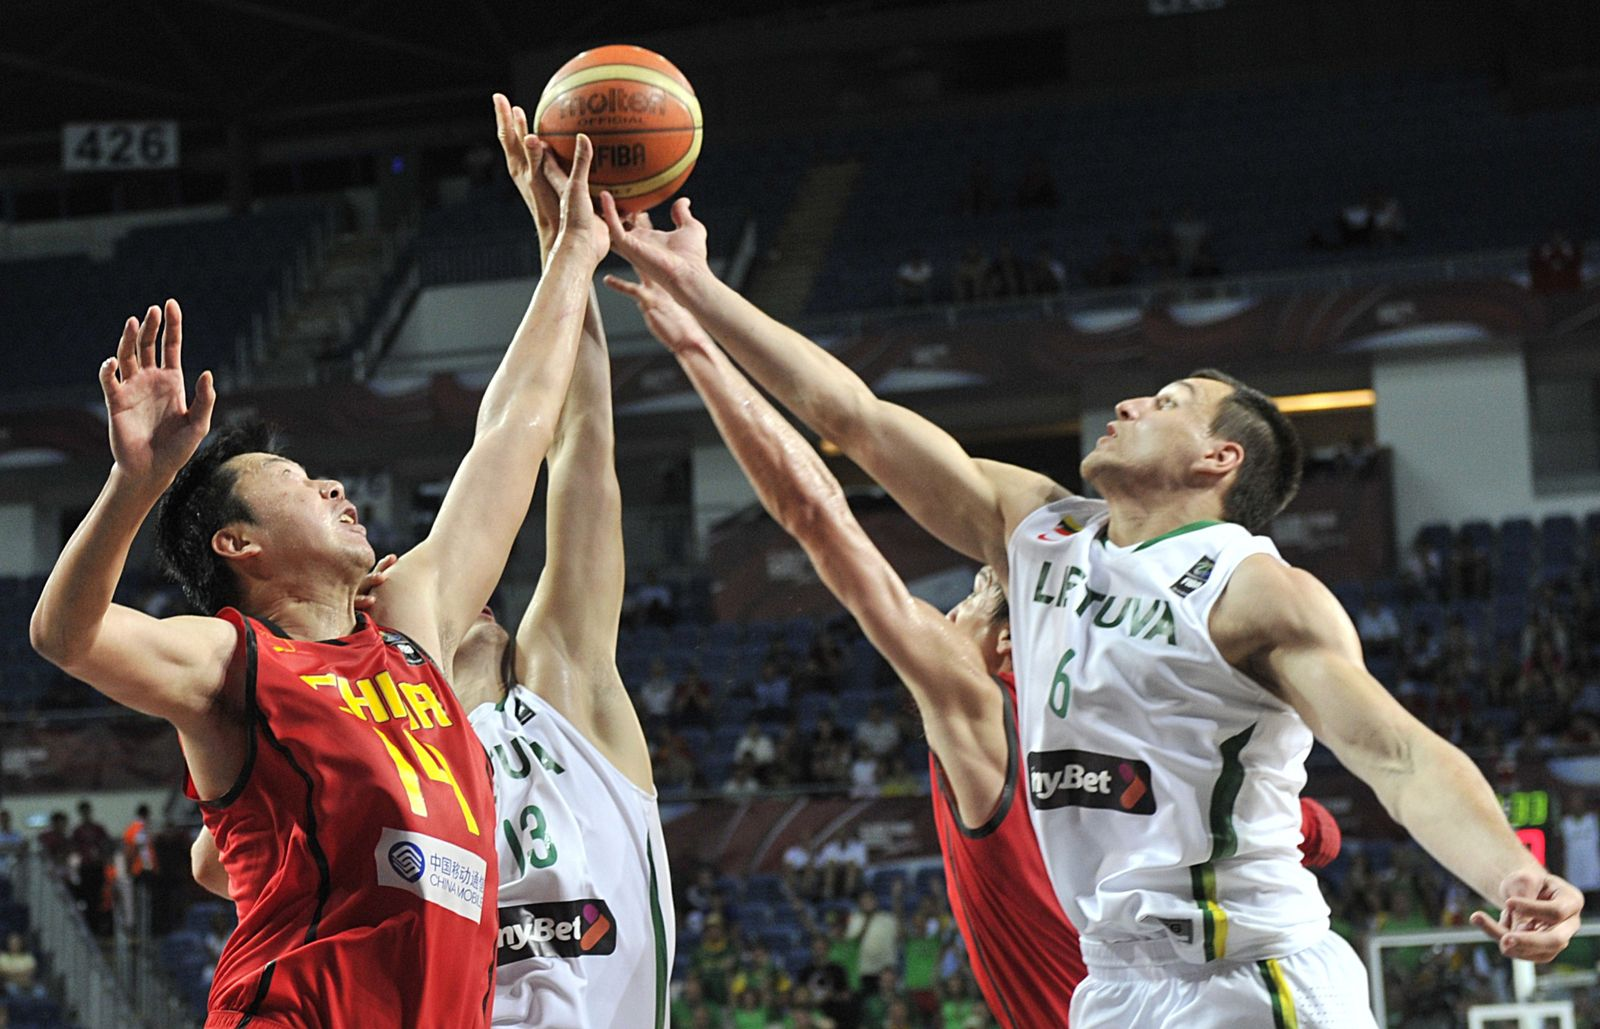 China Litauen Basketball-WM